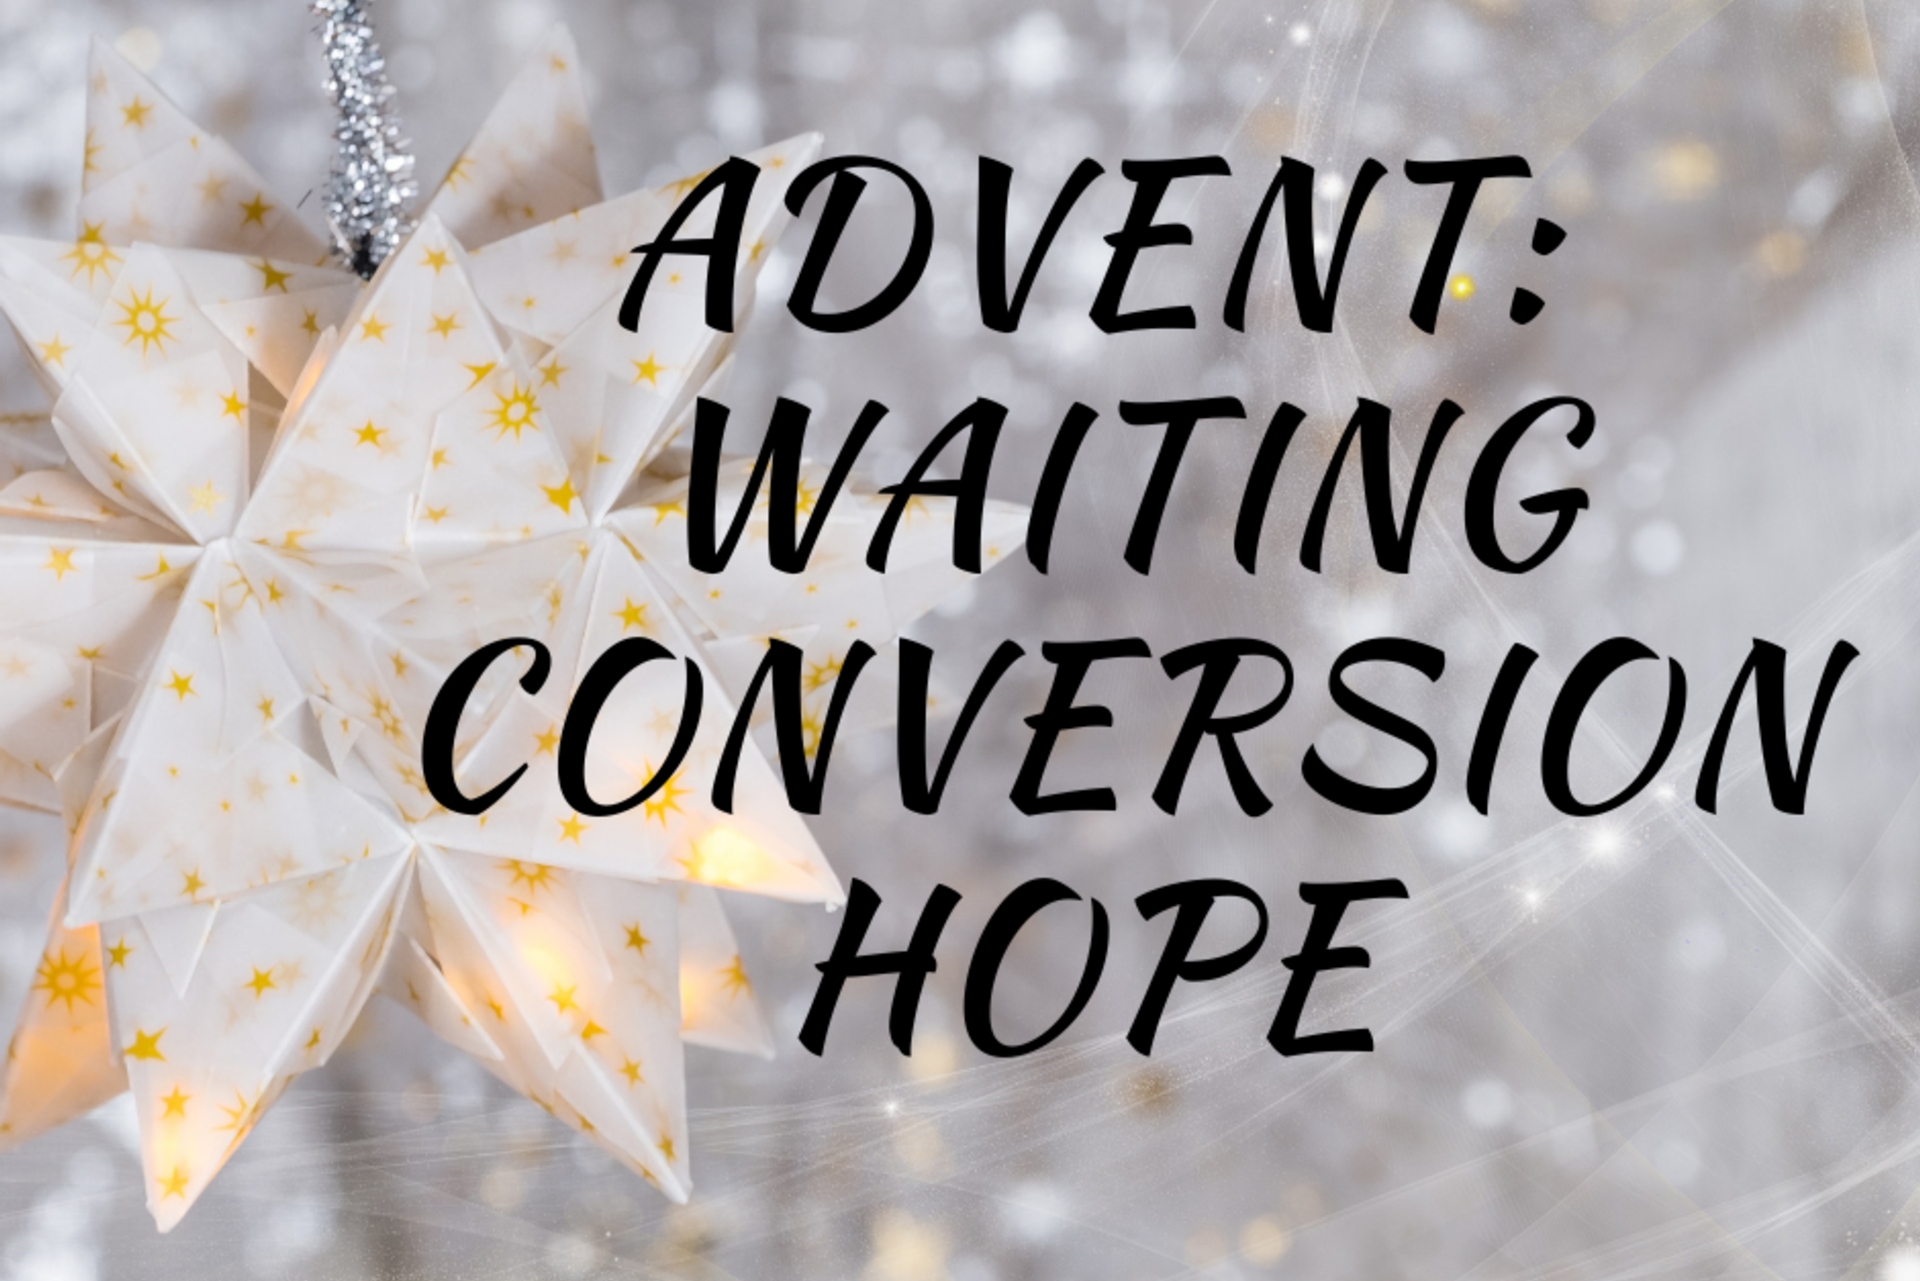 Advent - Day 1 Sunday 1 December 2019